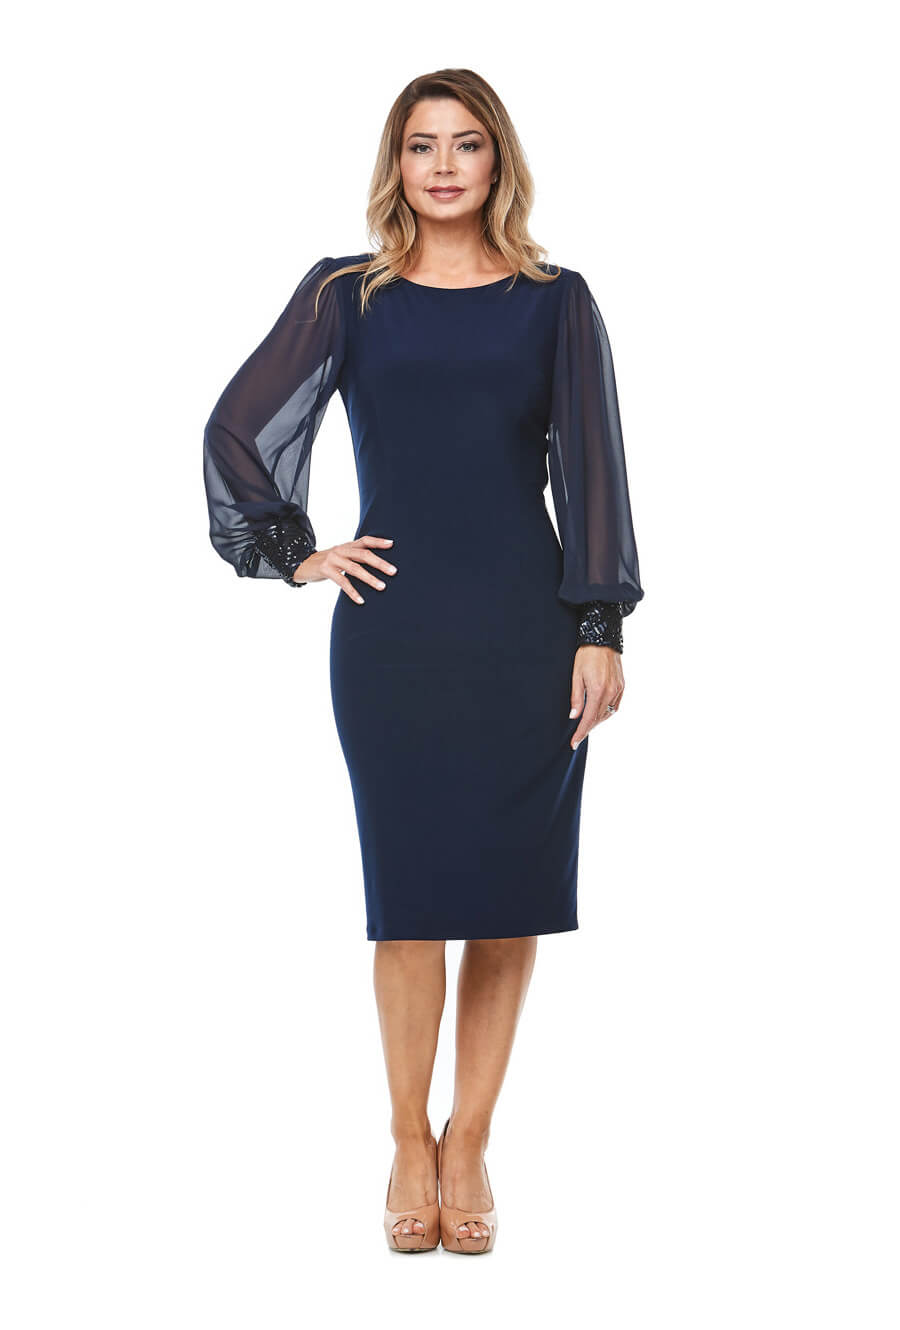 Stretch jersey cocktaildress with long sheer bishop sleeves & beaded cuff detail